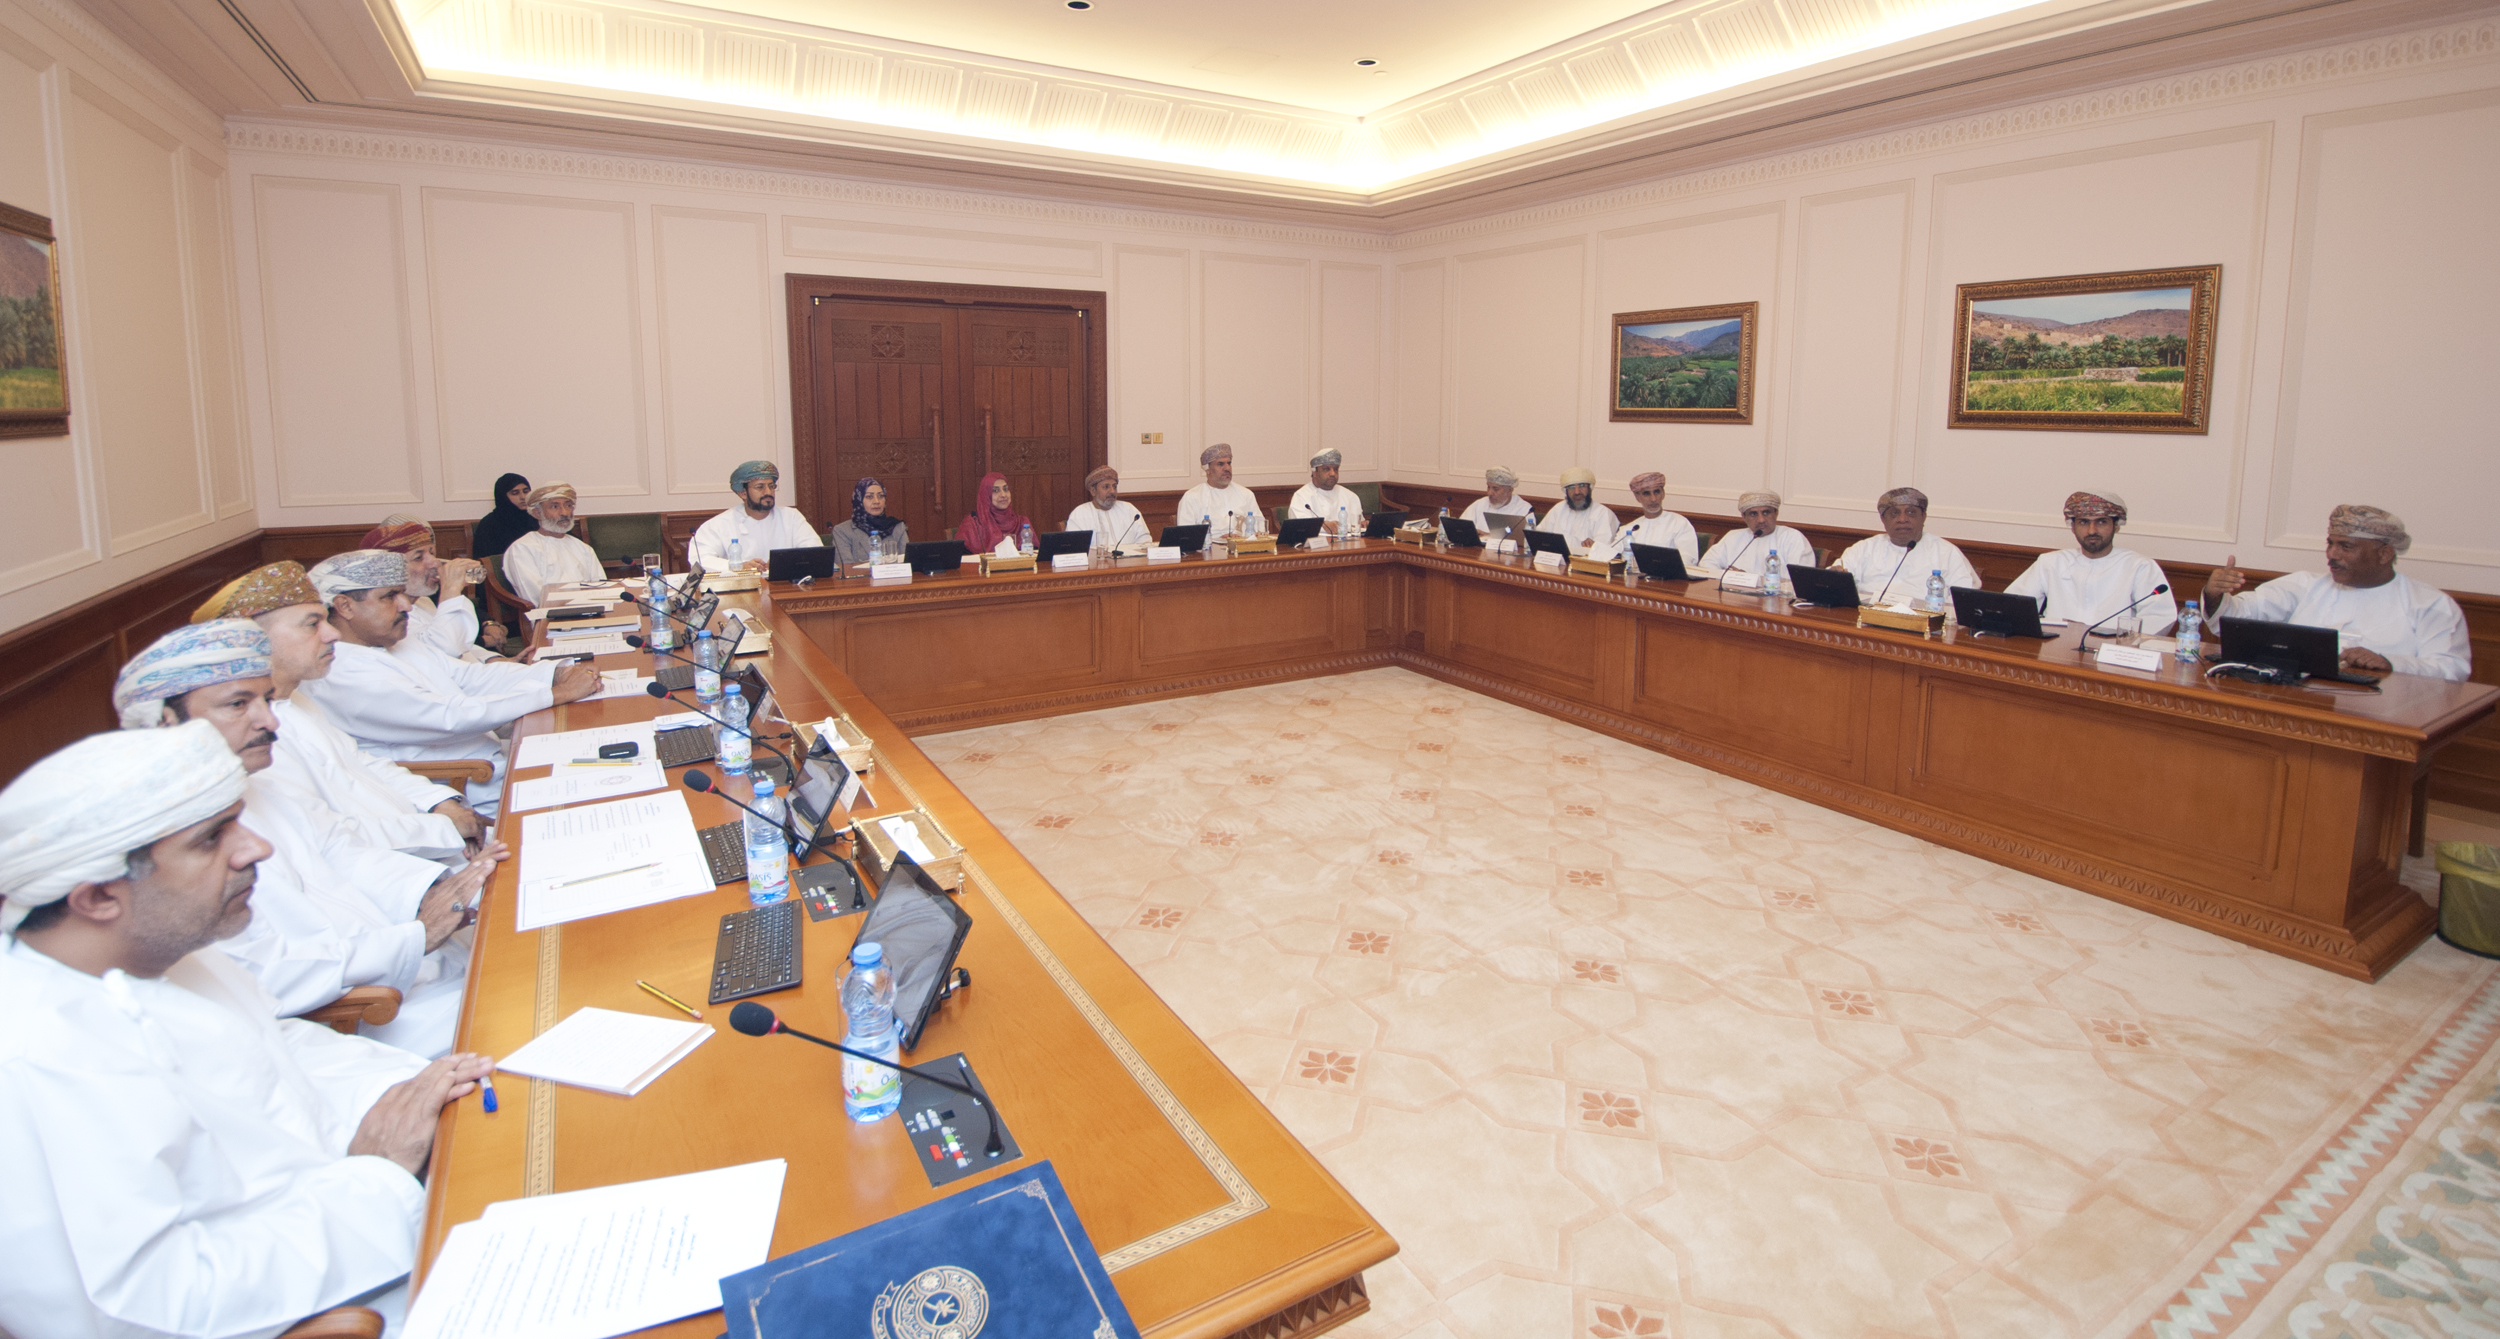 Manpower Ministry specialists share information on Omani higher education